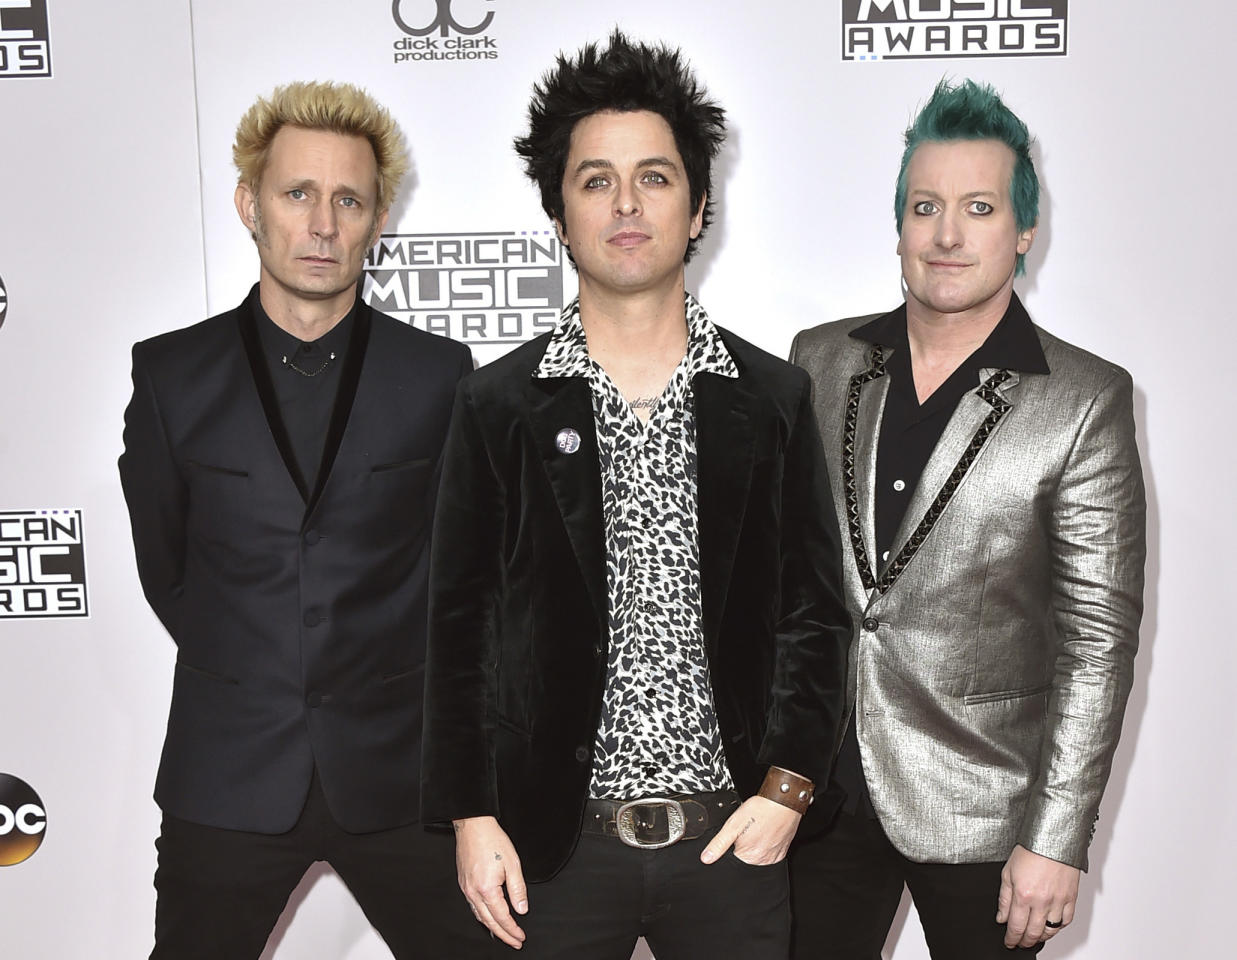 """FILE - In this Nov. 20, 2016 file photo, Mike Dirnt, from left, Billie Joe Armstrong, and Tre Cool, of Green Day, arrive at the American Music Awards in Los Angeles. The band will release their latest, """"Greatest Hits: God's Favorite Band,"""" on Friday. (Photo by Jordan Strauss/Invision/AP)"""